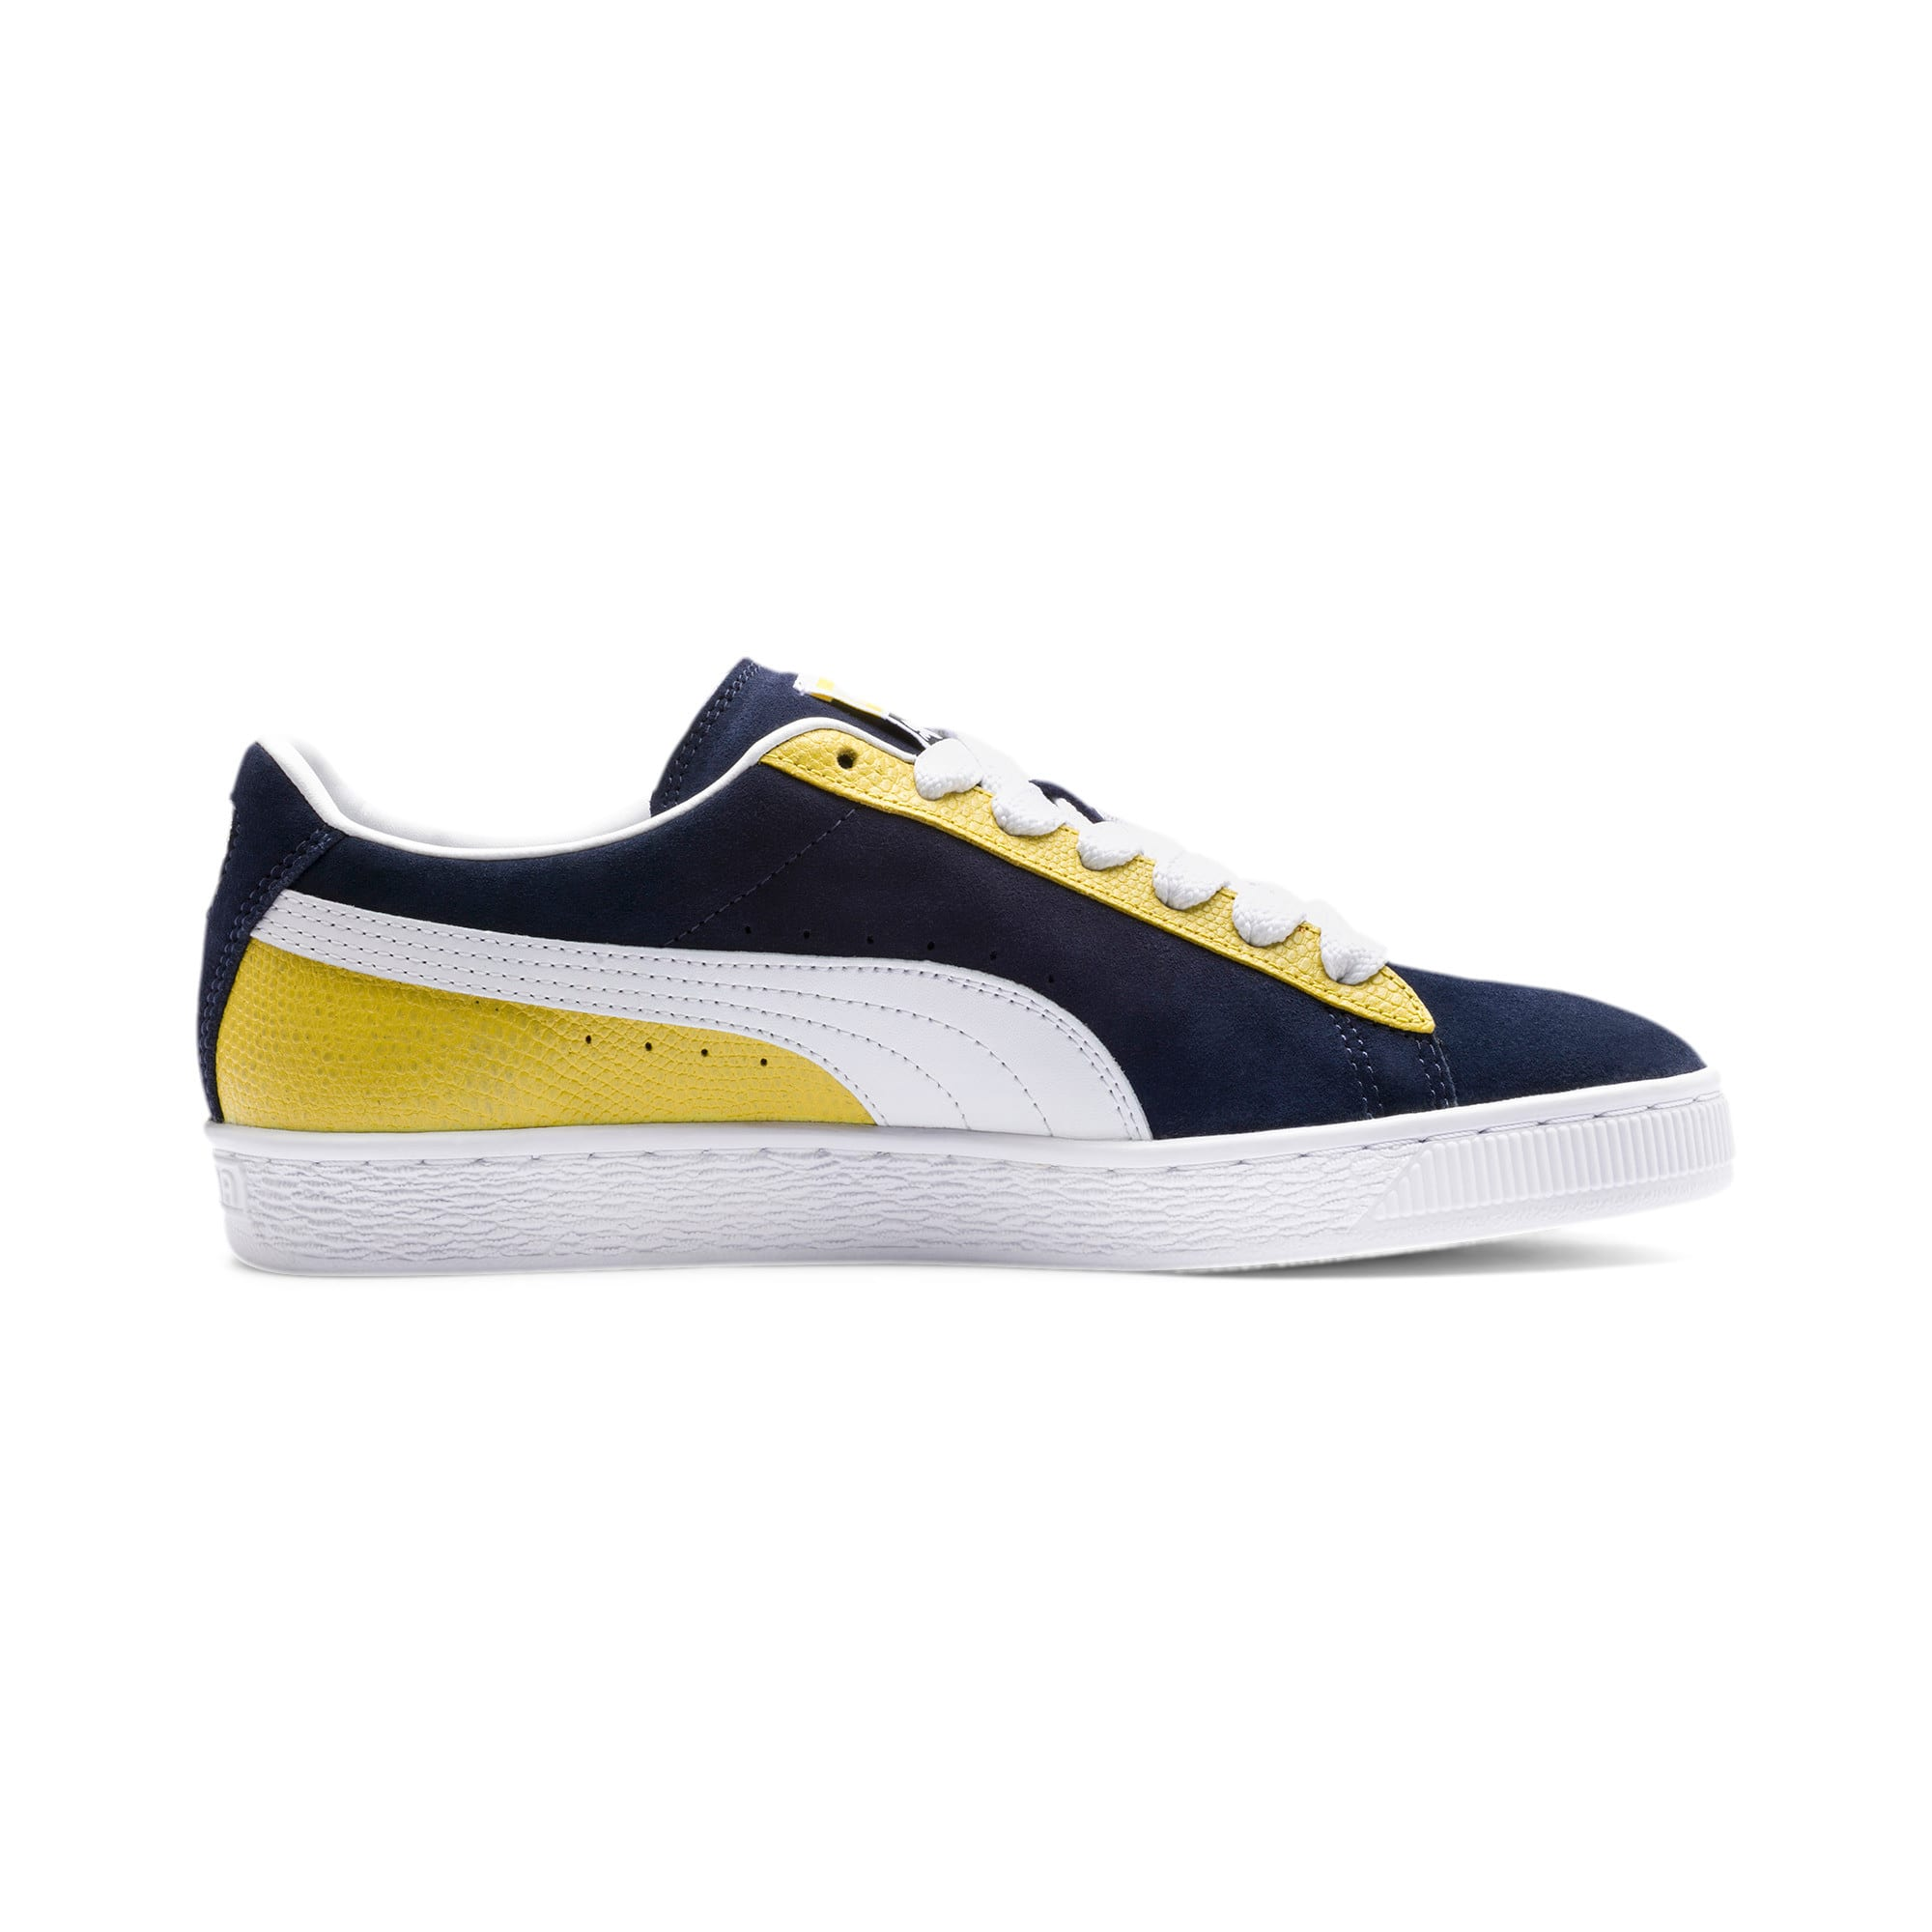 Thumbnail 6 of Suede Classic Block Sneakers, Peacoat-Sulphur-Puma White, medium